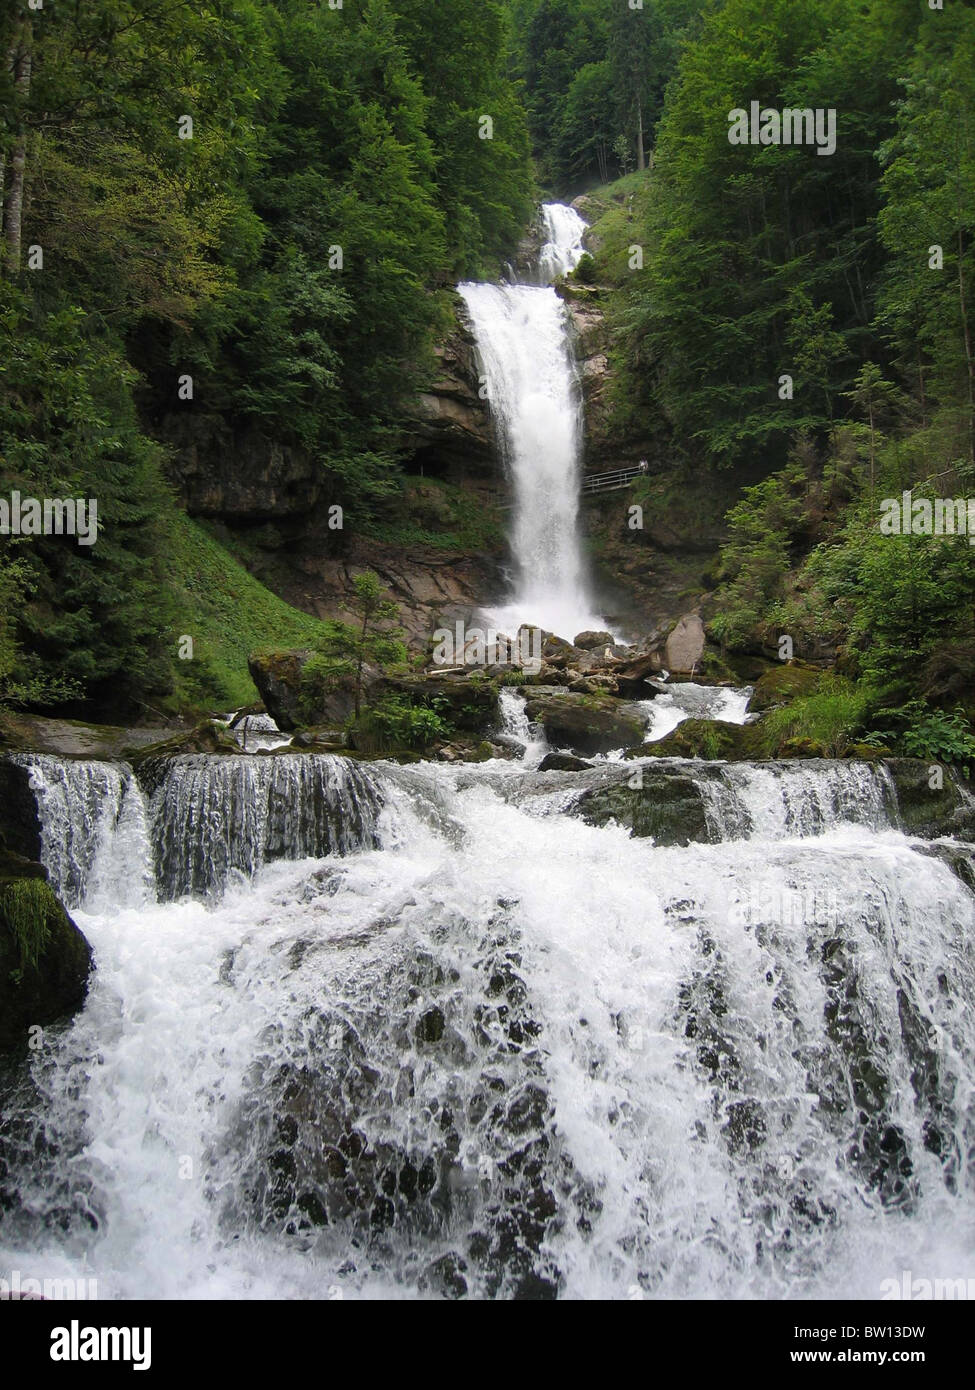 Swiss falls: Giesbach falls switzerland Stock Photo